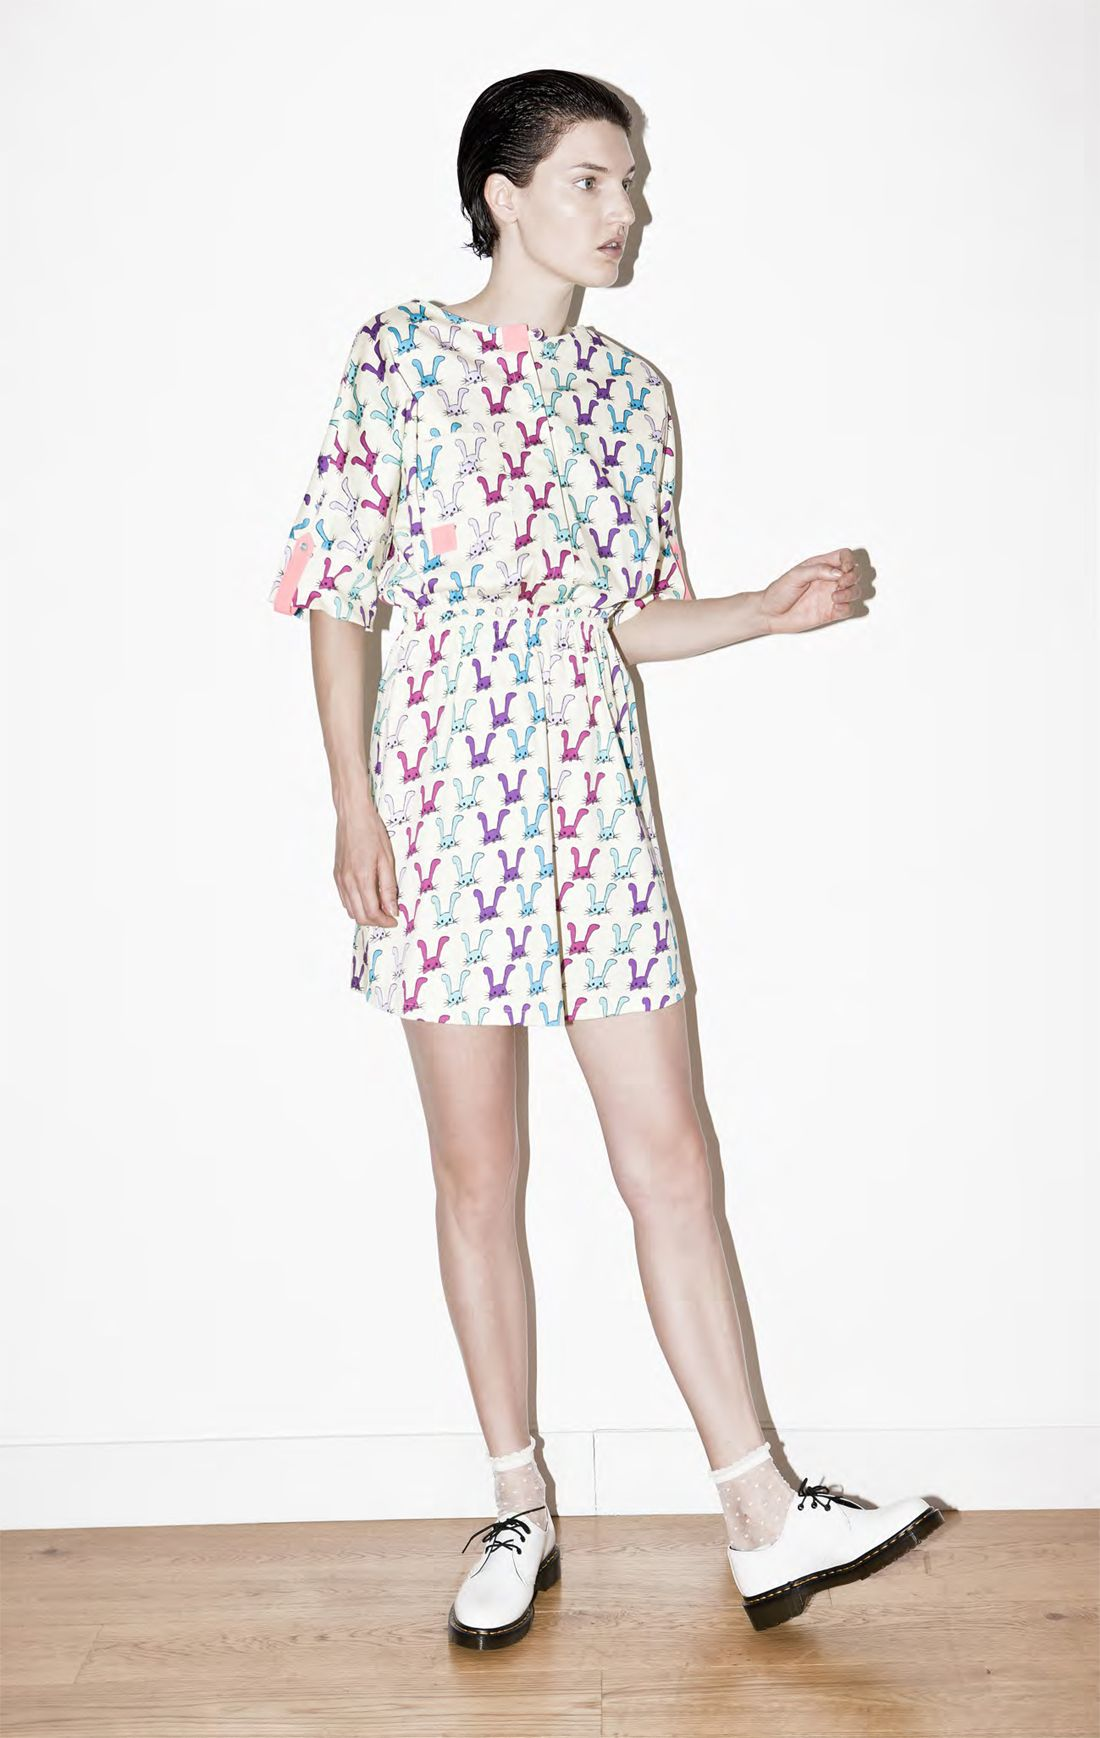 Maid in love candy dress in weareselecters stores ss we are